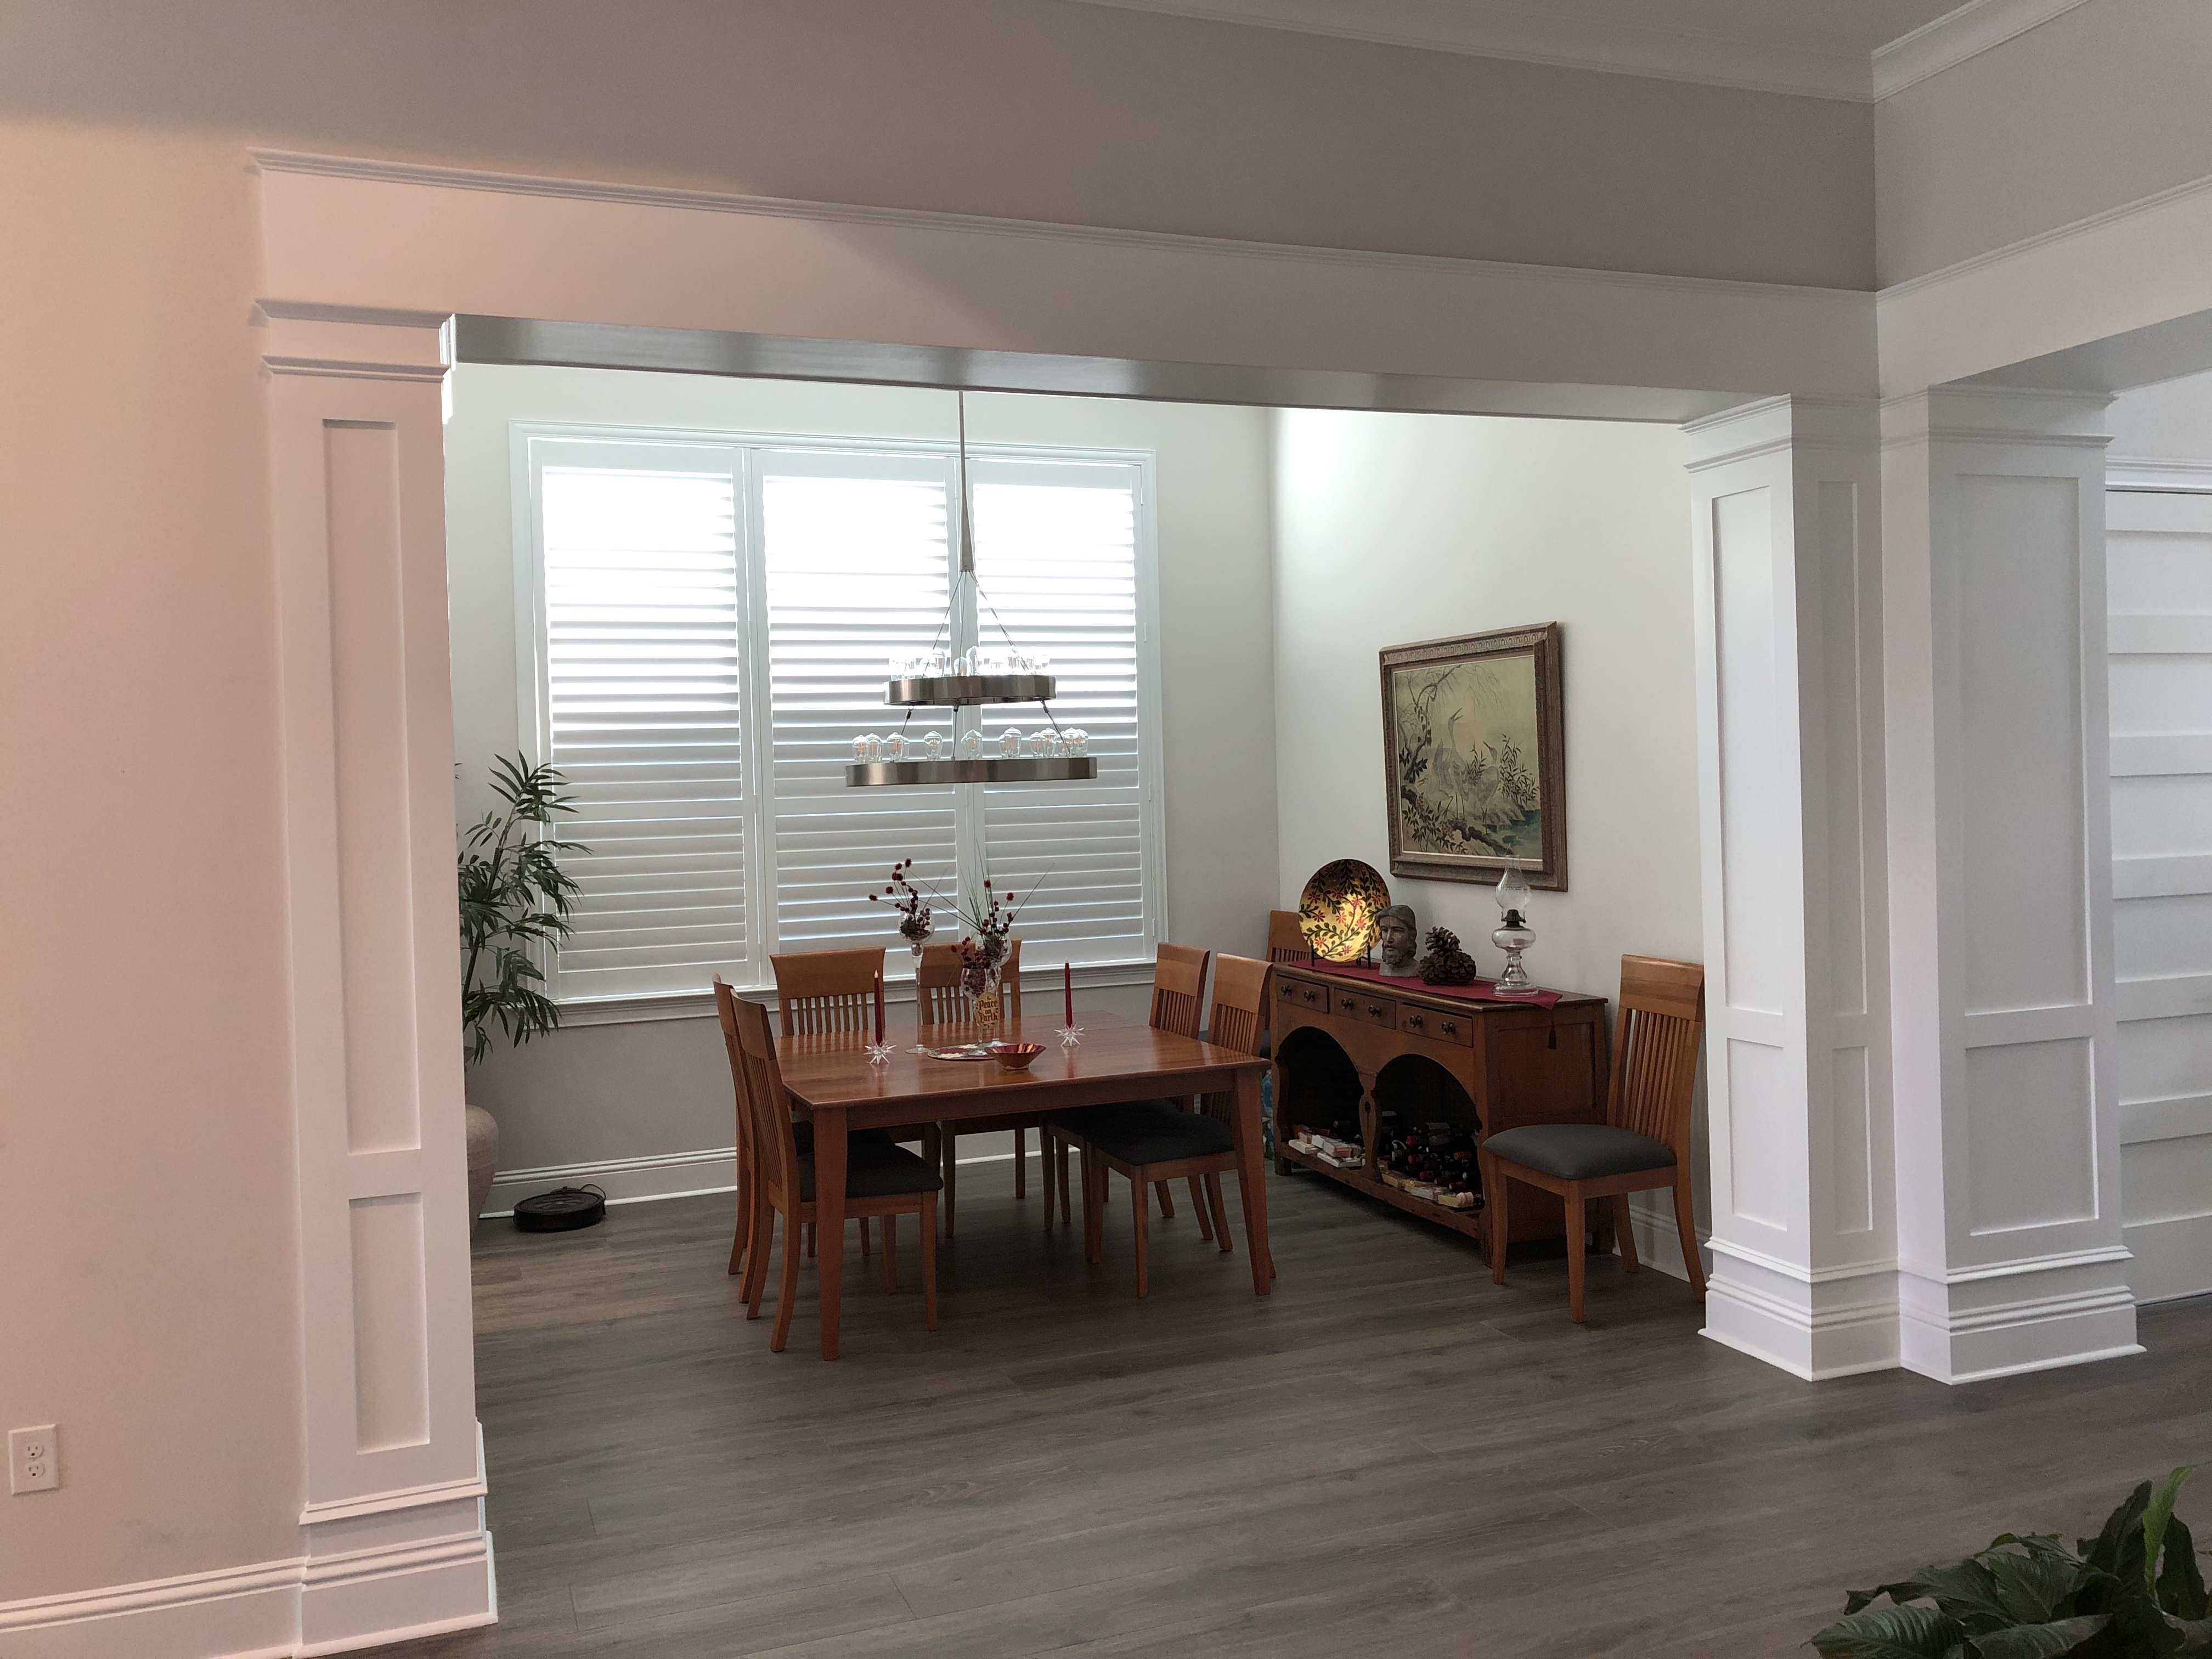 Dining Room Entrance Columns